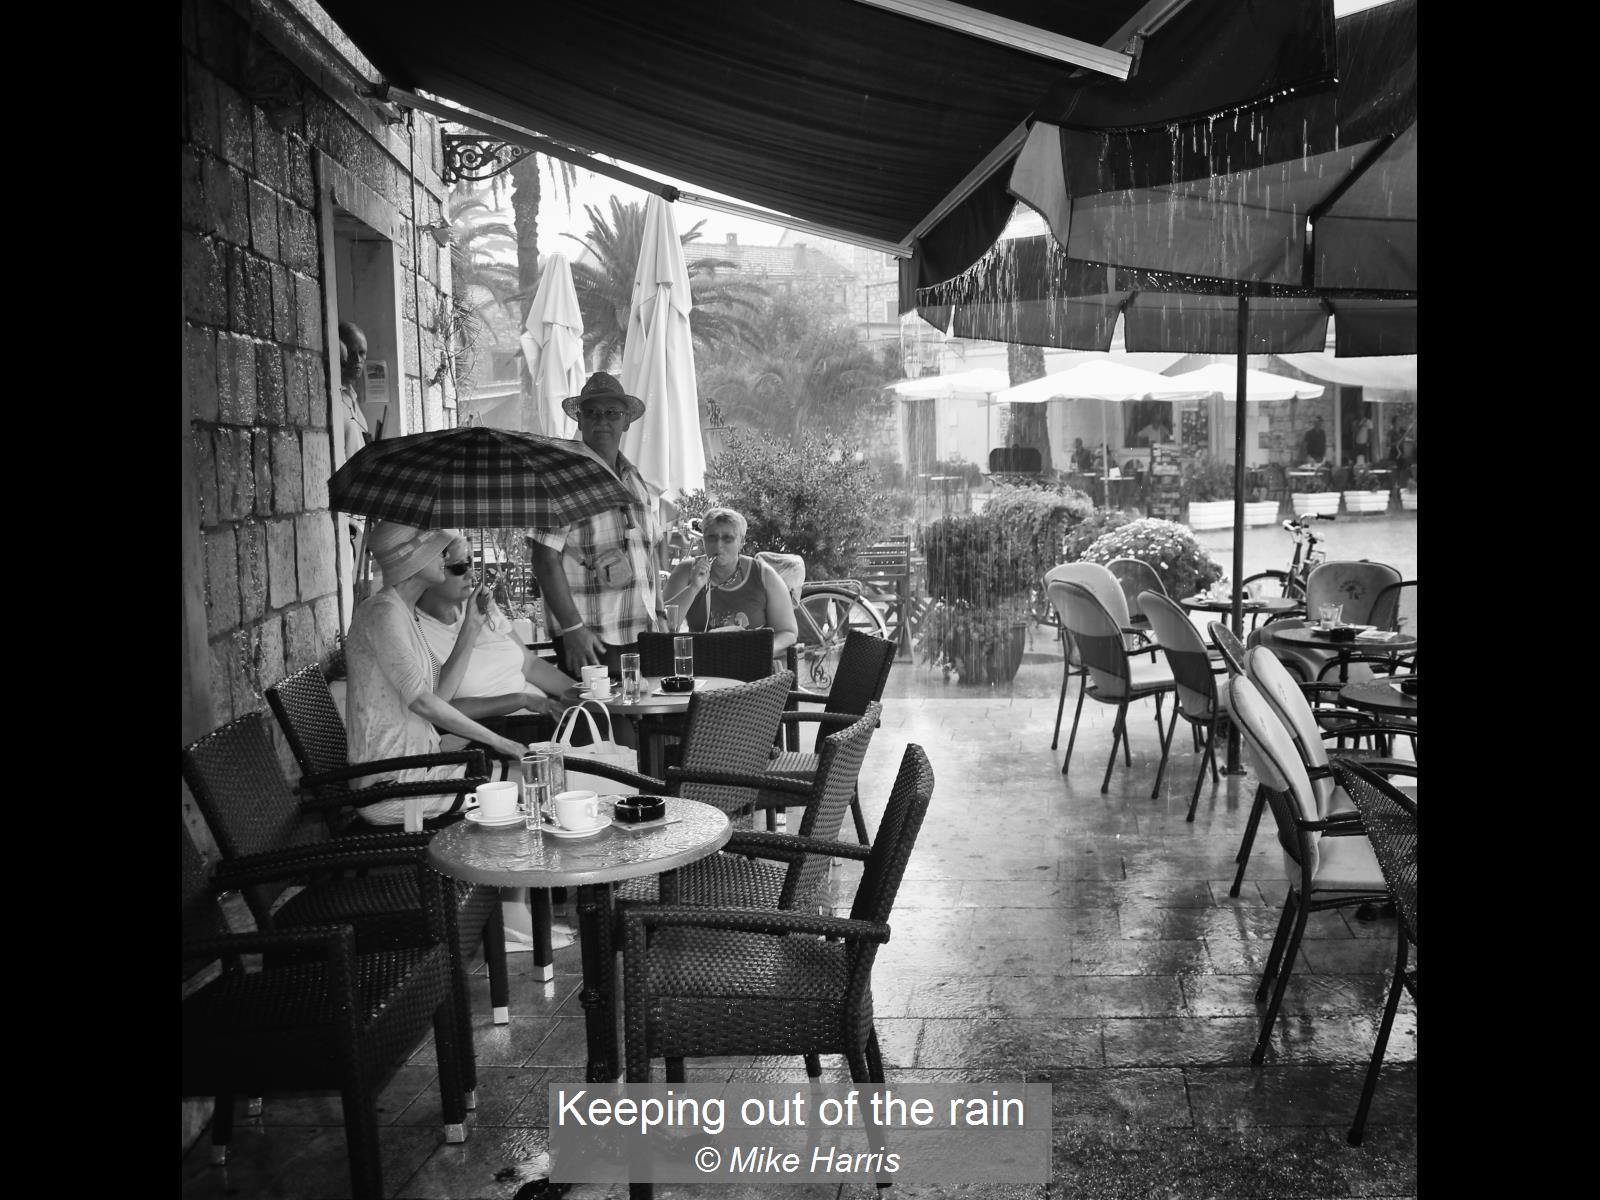 Mike Harris_Keeping out of the rain_None